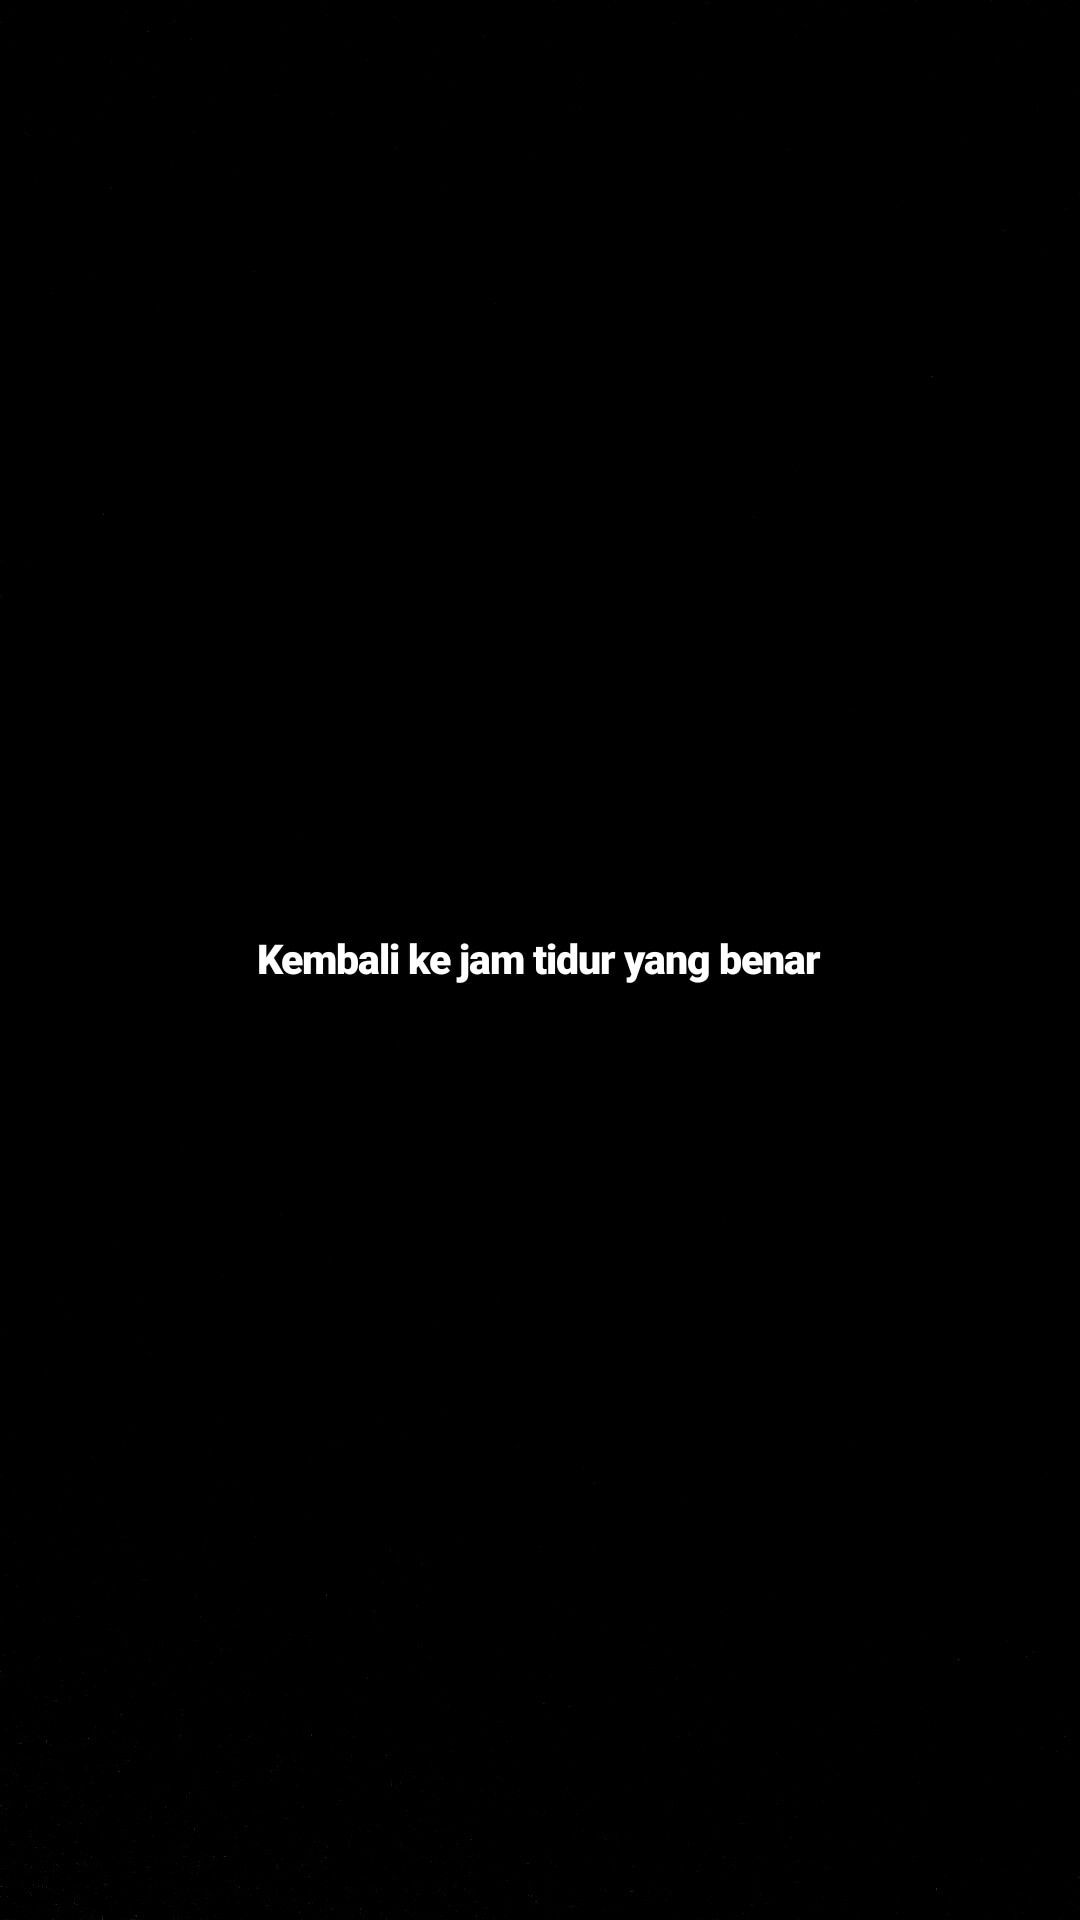 Best Quotes Indonesia Cinta Truths So True 58 Ideas Quotes With